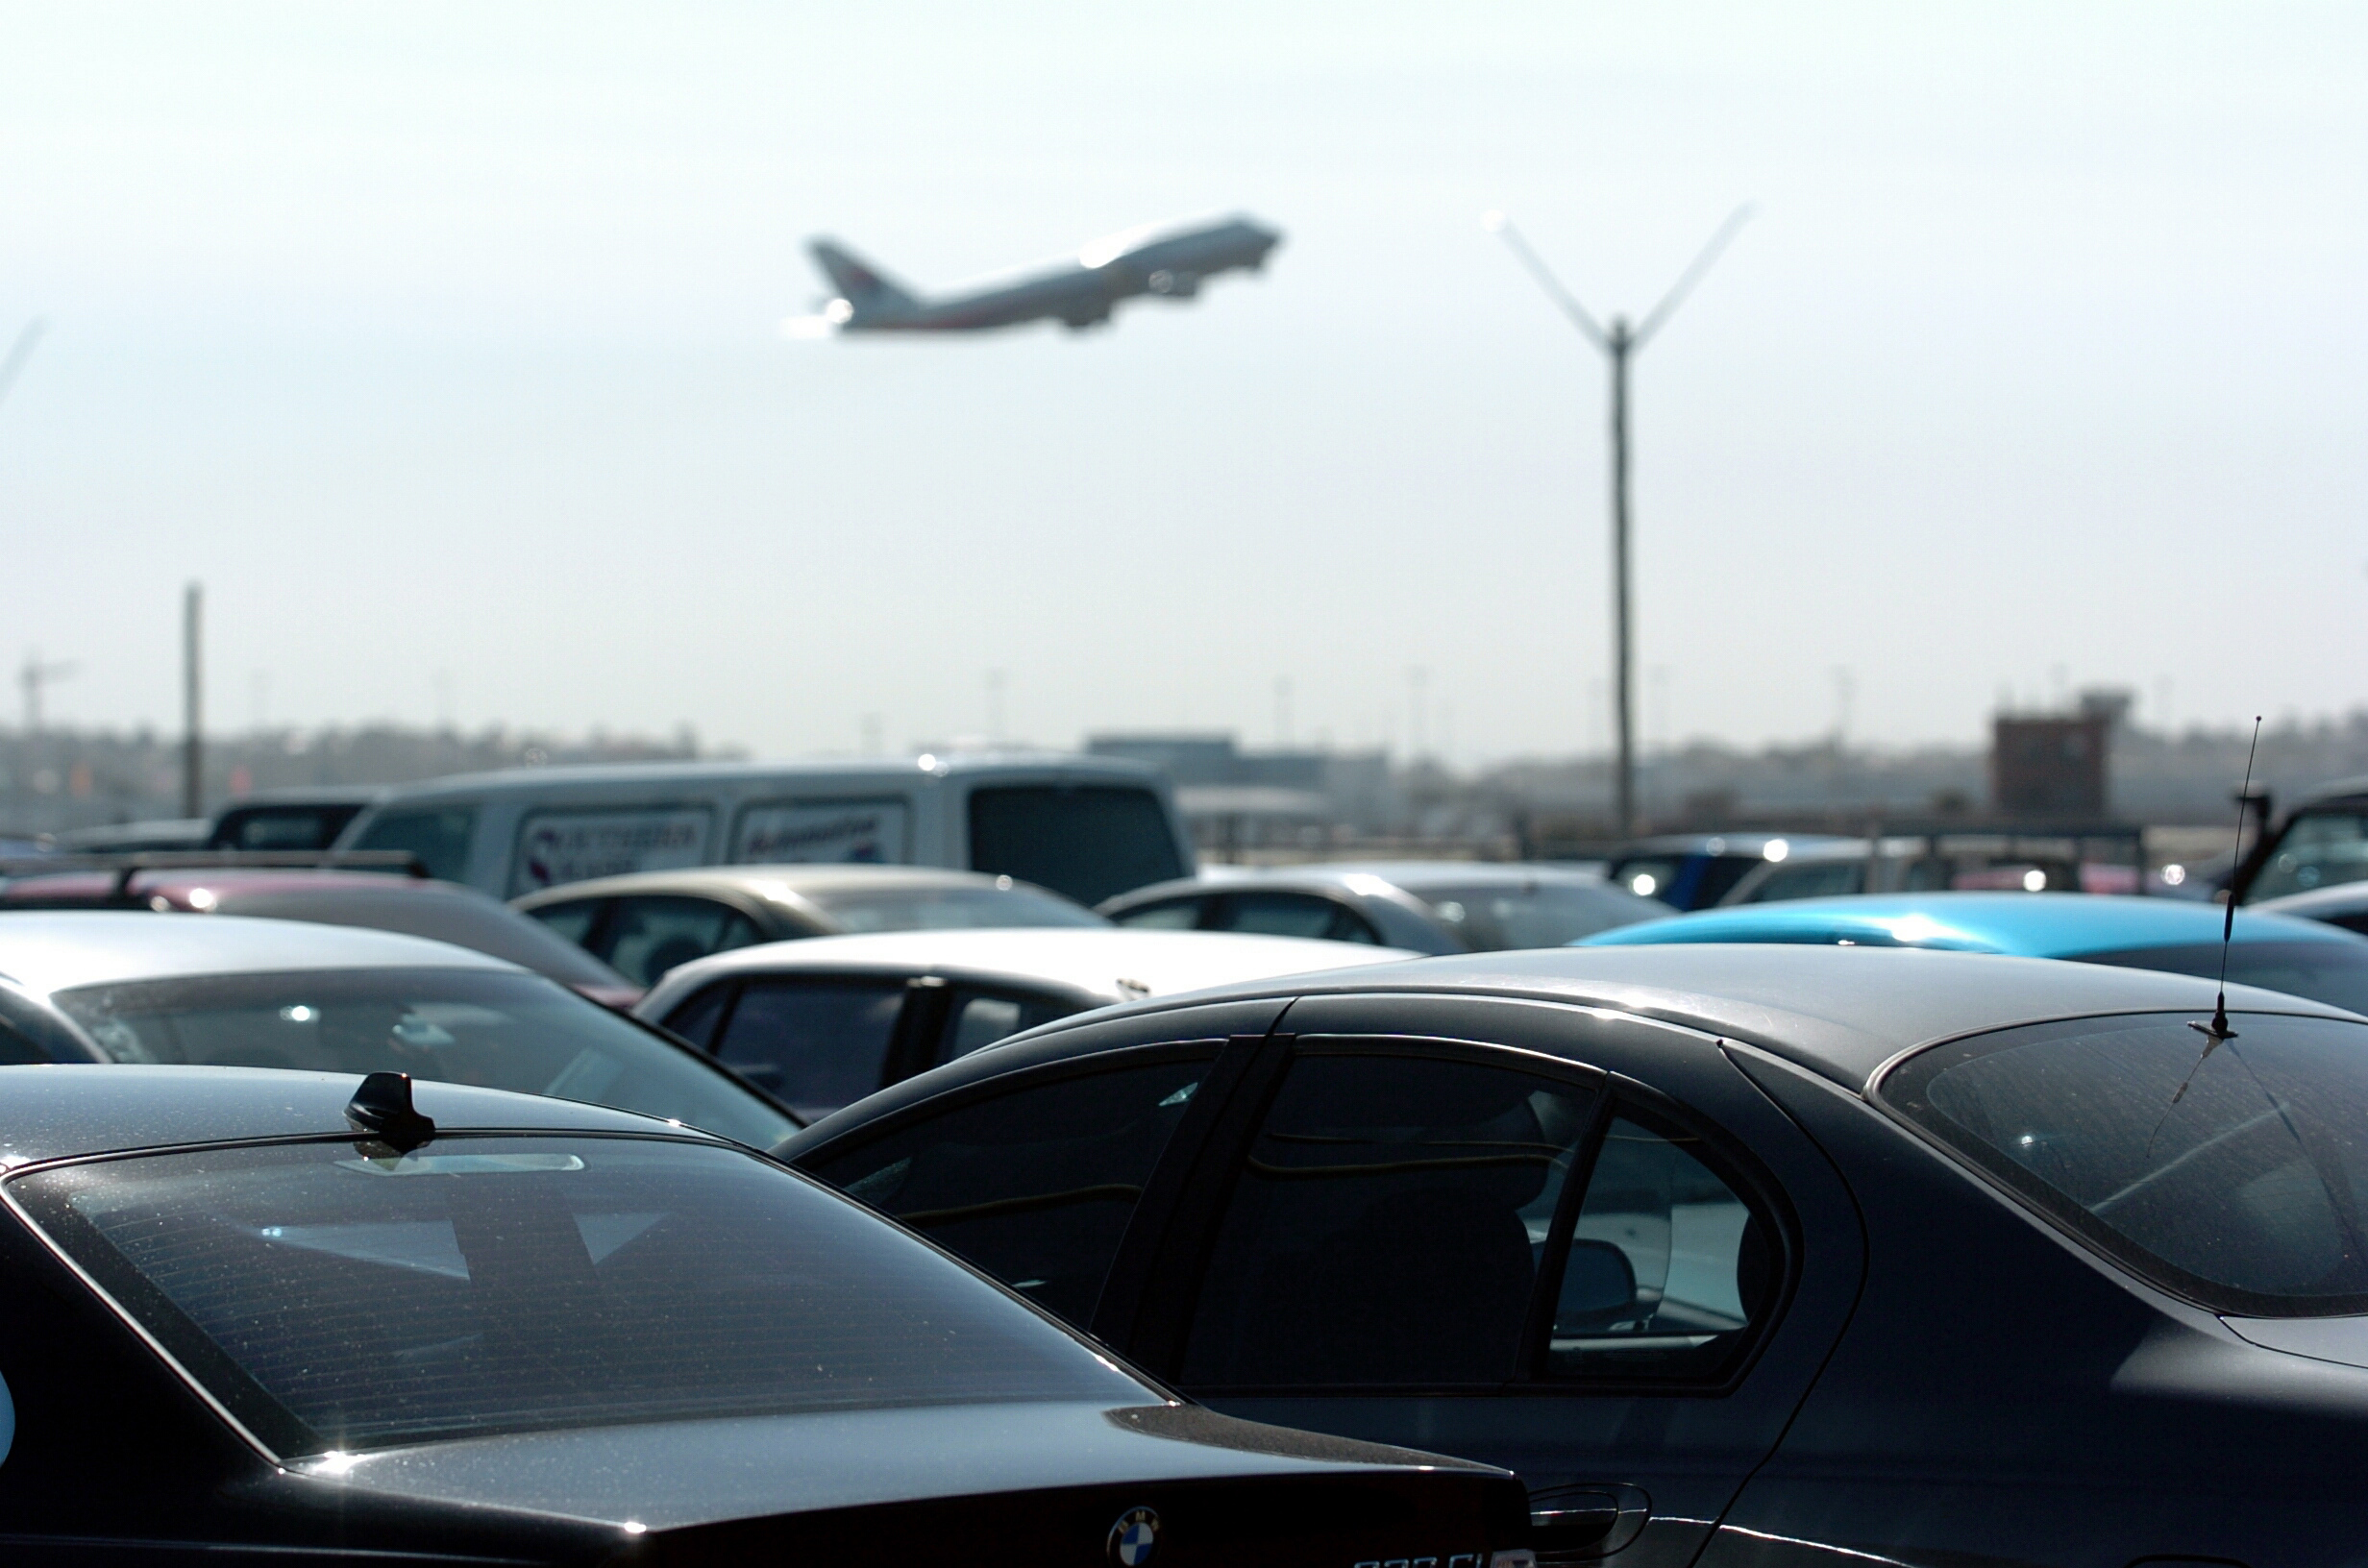 airport_parking4